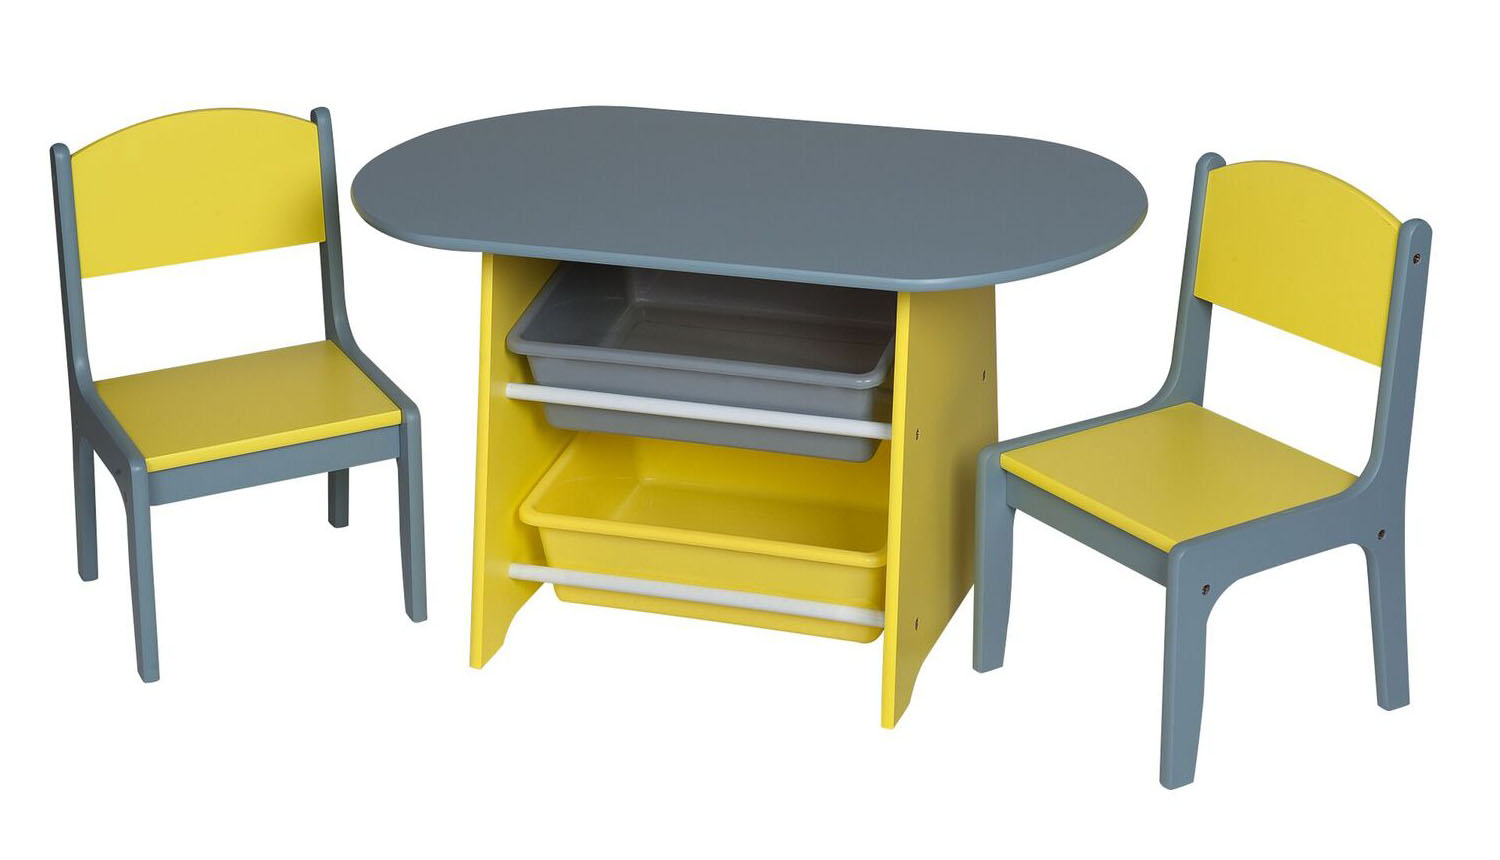 Table With 2 Chairs Gift Mark Children S Oval Table With 2 Chairs And 2 Storage Bins Multiple Colors